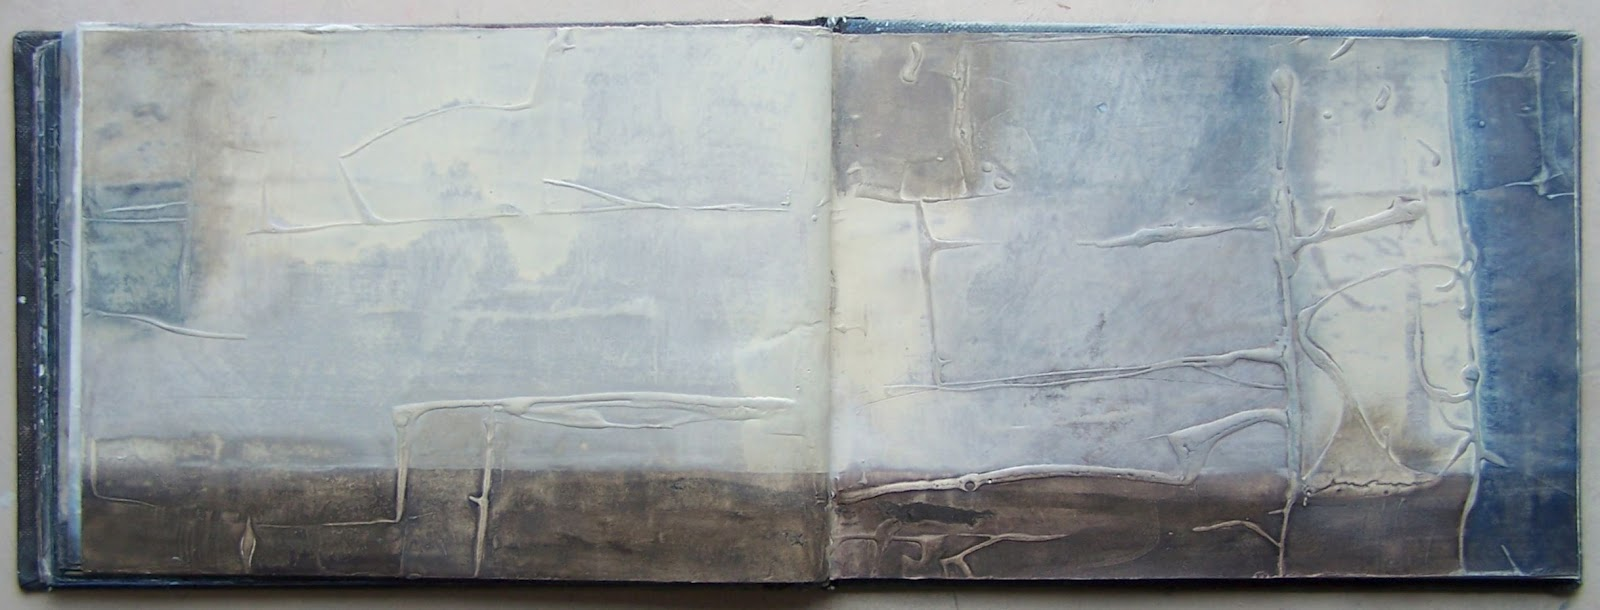 Elisabeth couloigner book of paintings minimal exposition for Art minimal livre